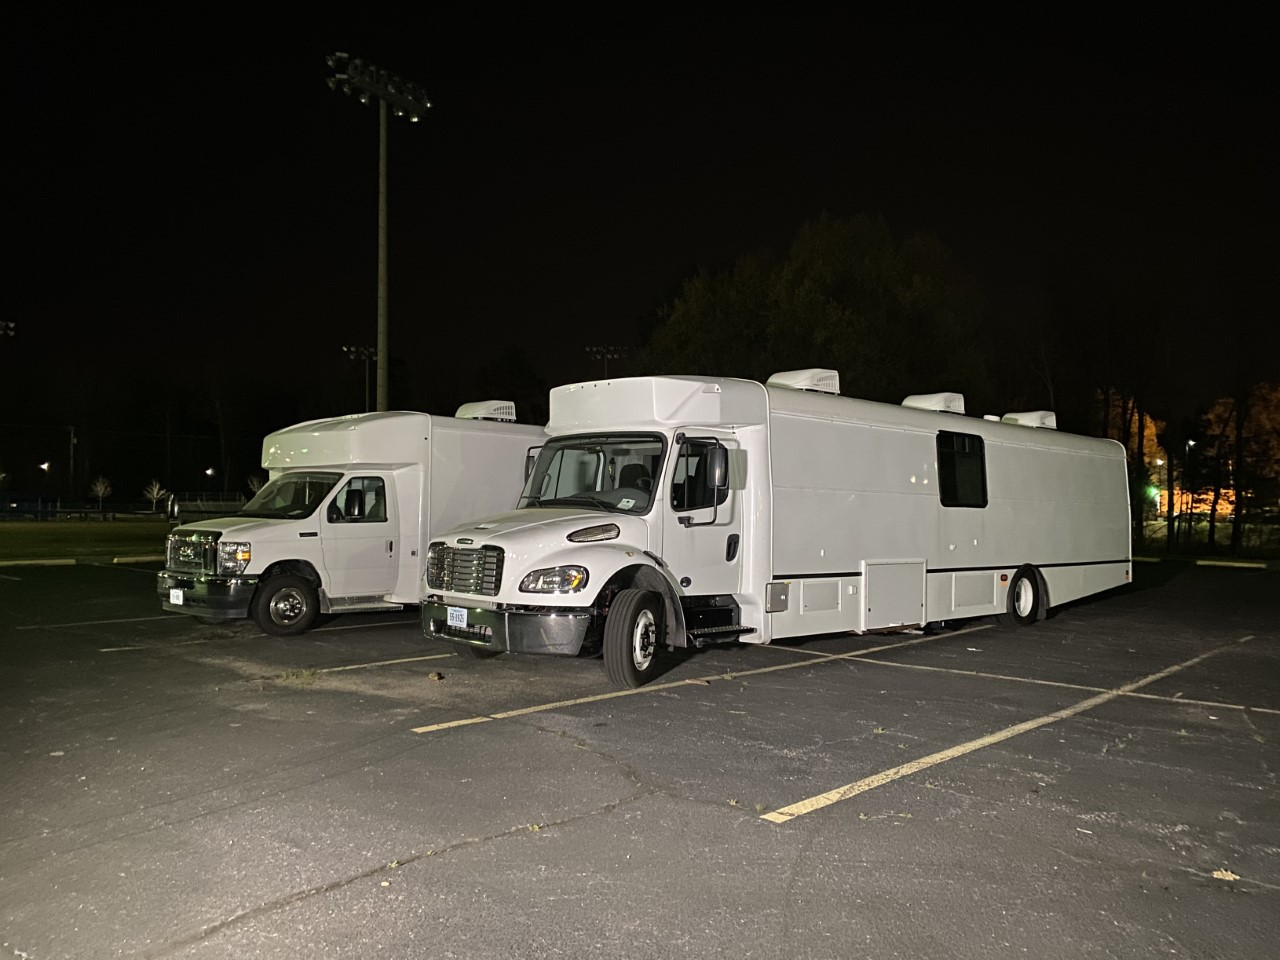 VSU vaccination mobile units